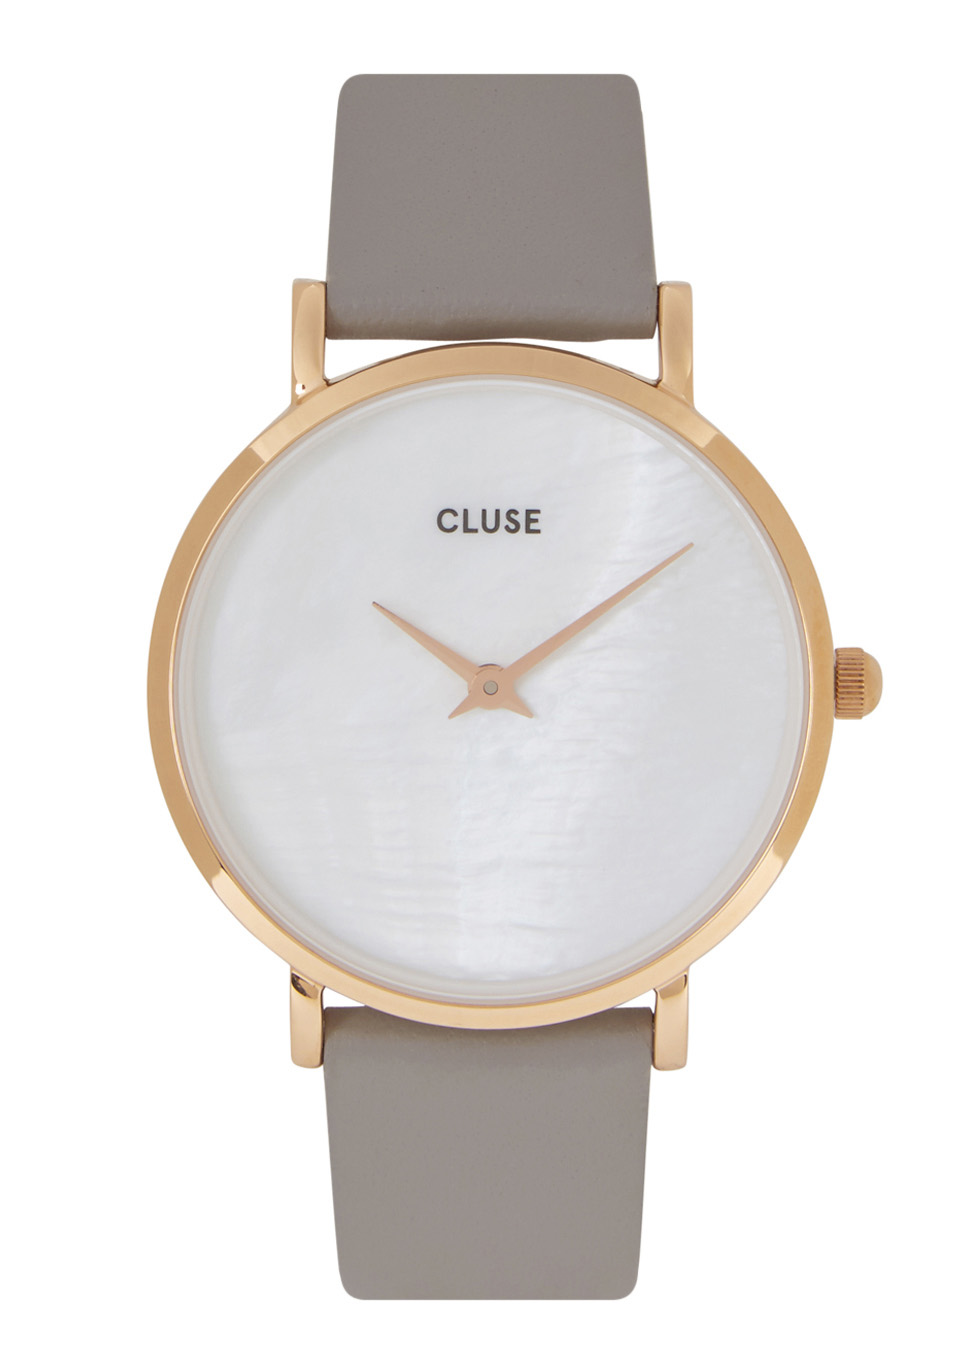 CLUSE MINUIT LA PERLE GOLD TONE WATCH